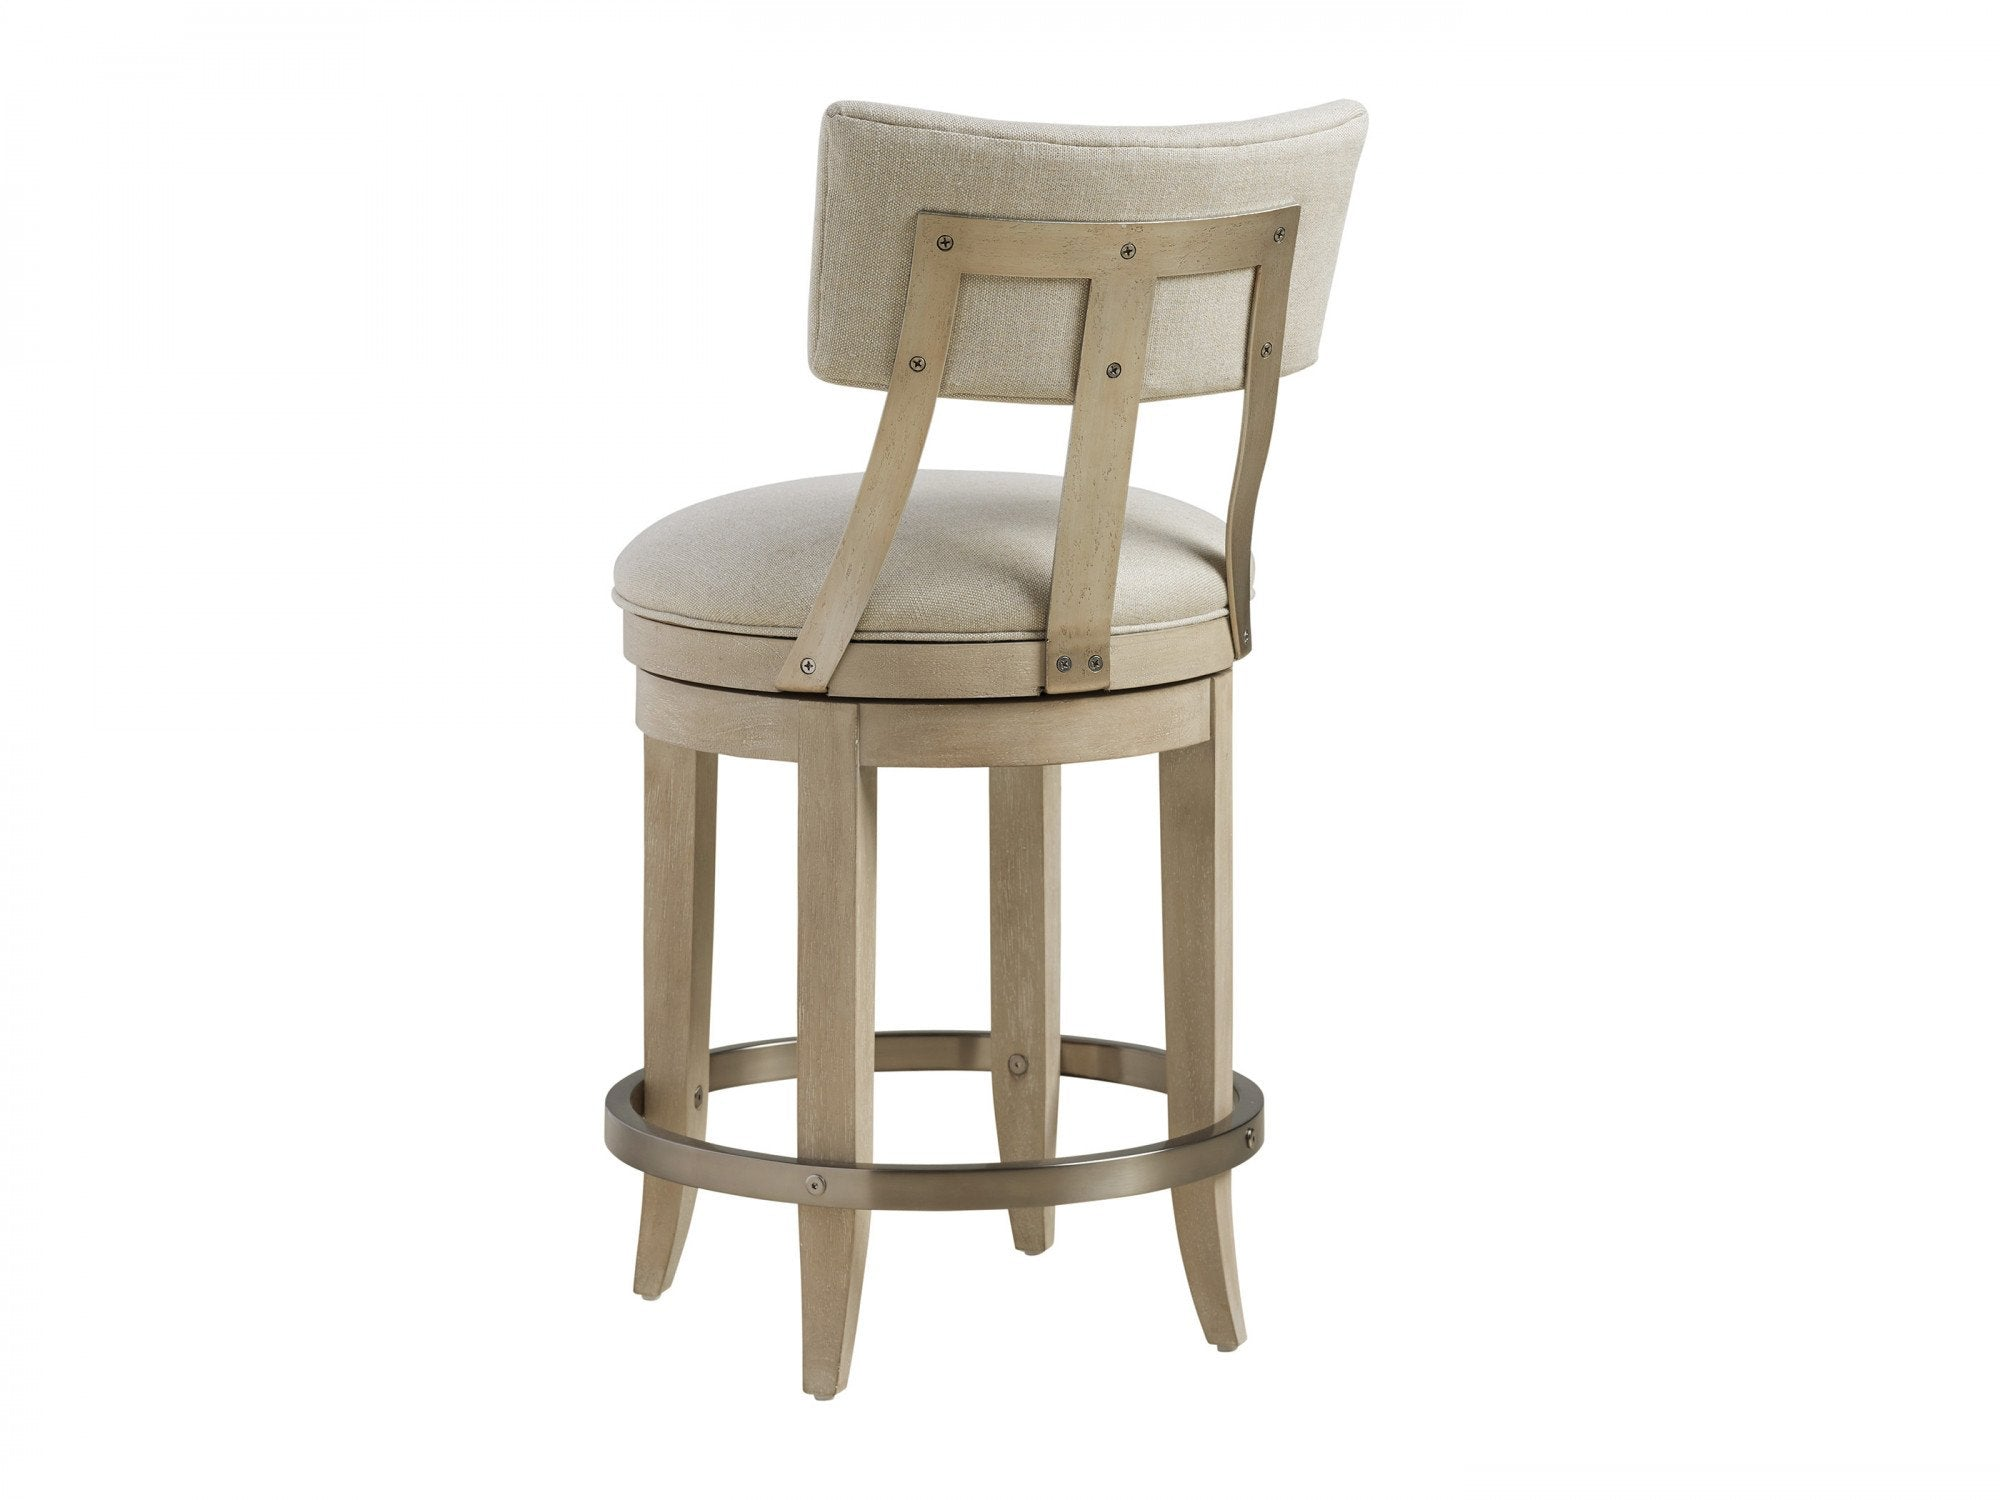 Cliffside Swivel Upholstered Counter Stool